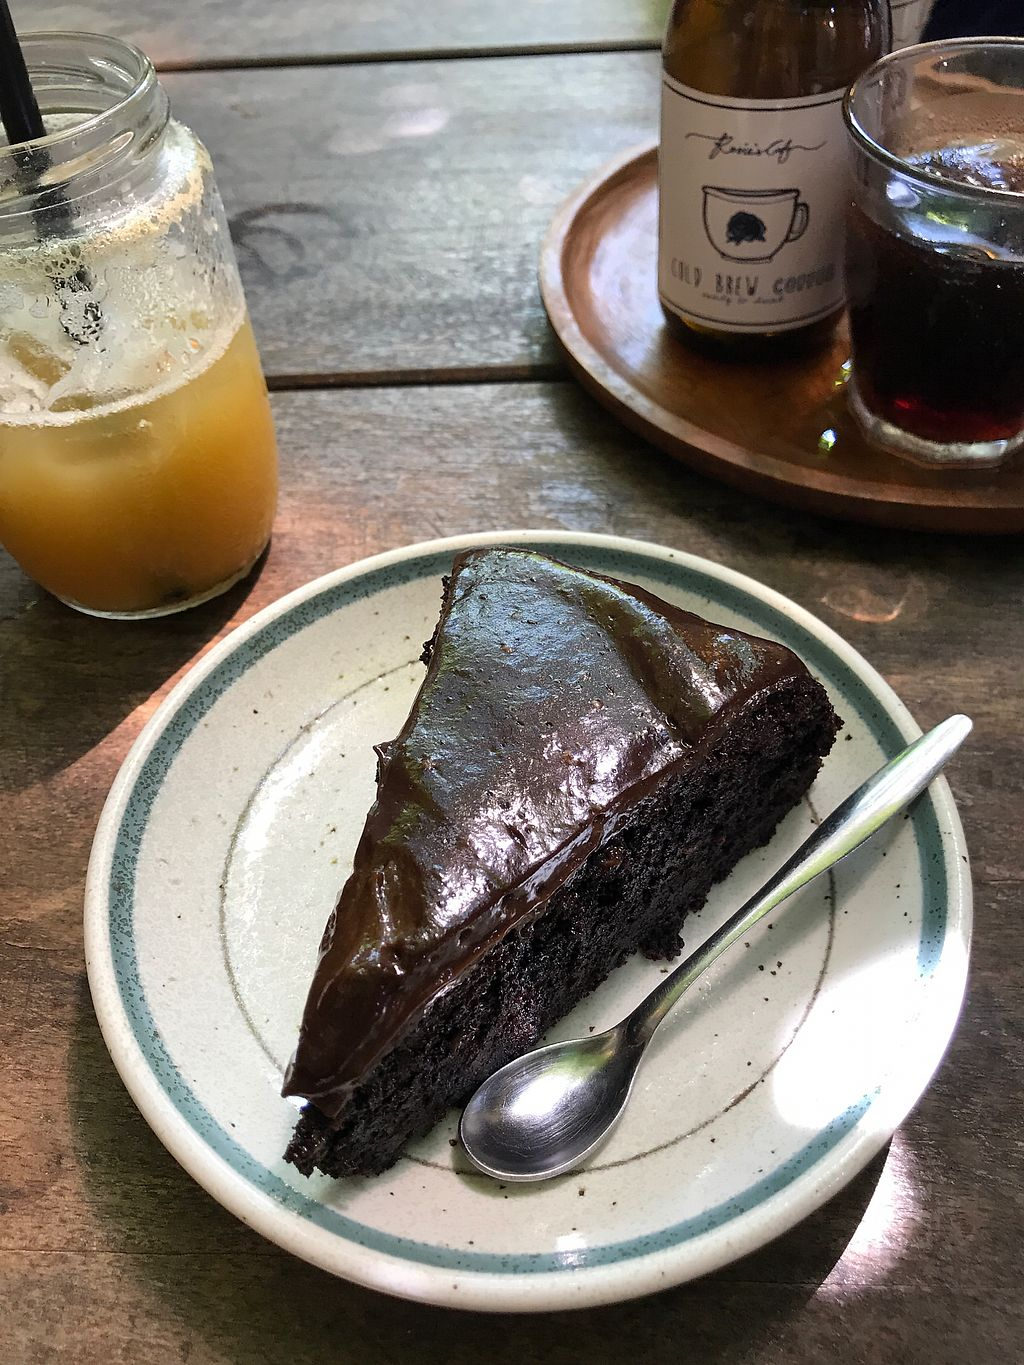 """Photo of Rosie's Cafe  by <a href=""""/members/profile/Milipili"""">Milipili</a> <br/>Vegan Cake  <br/> March 7, 2018  - <a href='/contact/abuse/image/77938/367656'>Report</a>"""